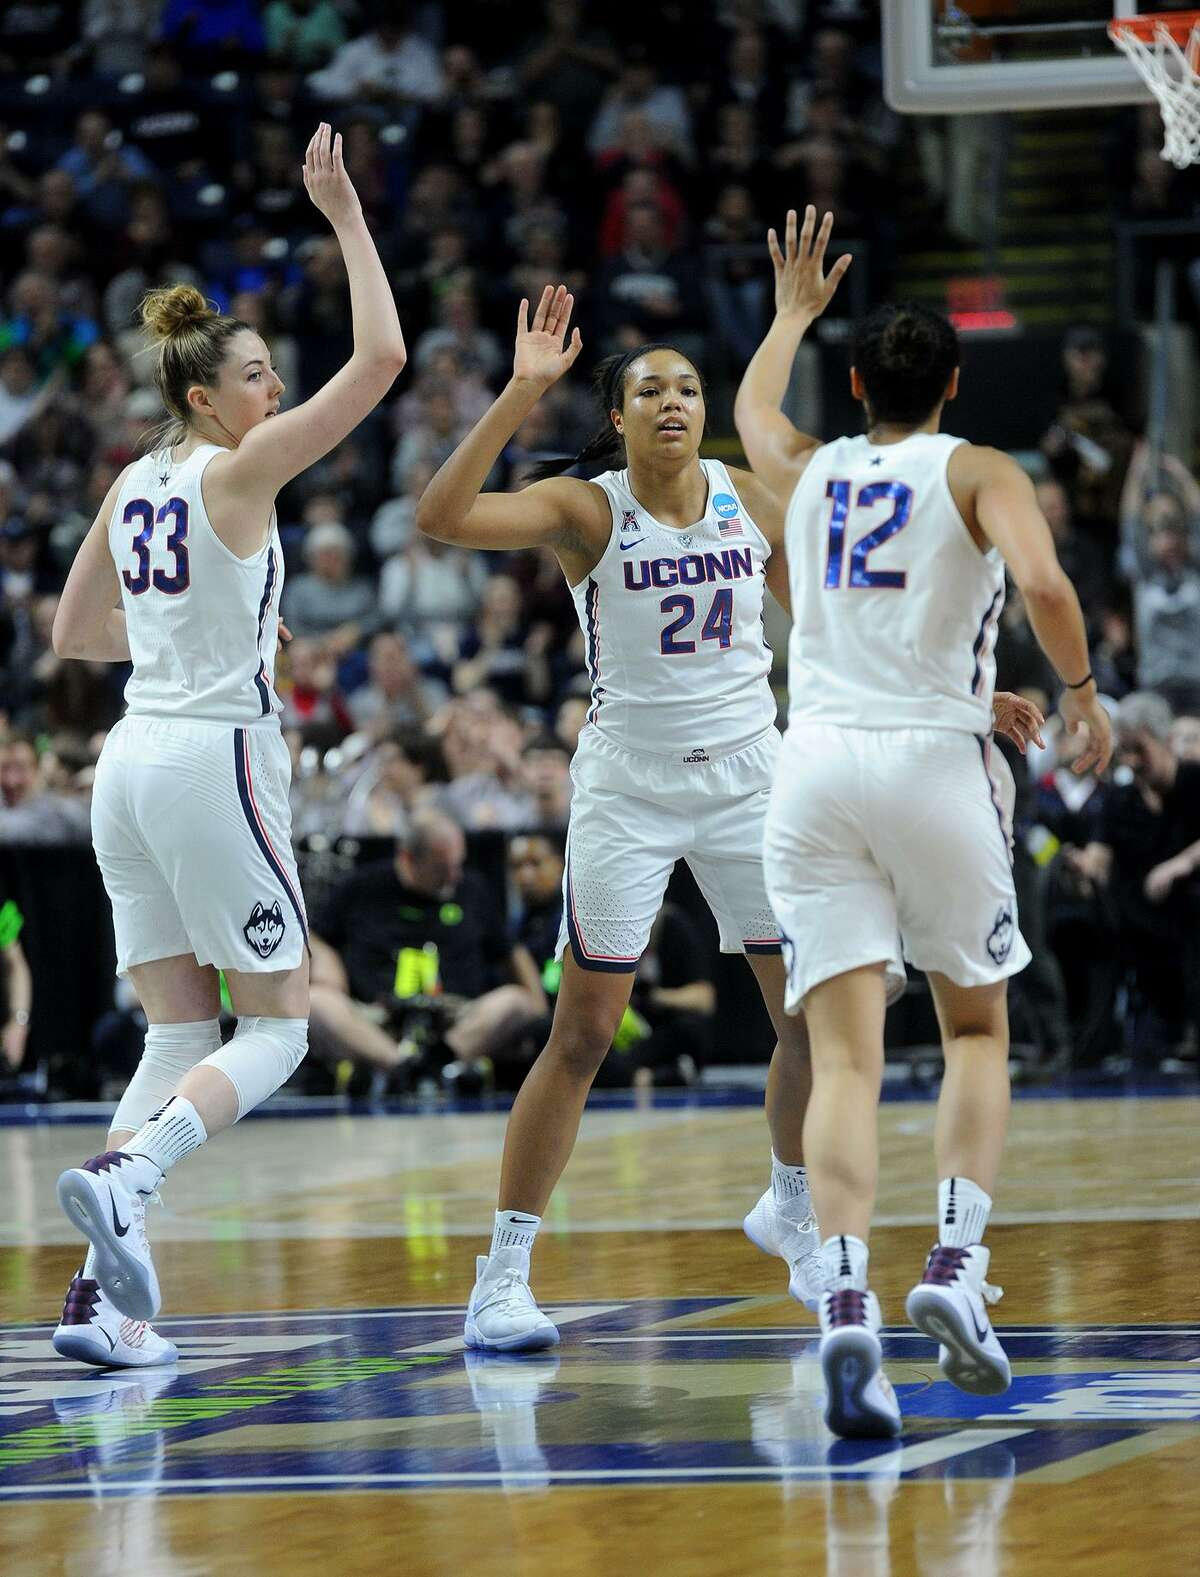 From left; UCONN players Katie Lou Samuelson, Napheesa Collier, and Saniya Chong celebrate a made basket during the first half of the NCAA Women's Basketball Regional Final game with Oregon at the Webster Bank Arena in Bridgeport, Conn. on Monday, March 27, 2017.